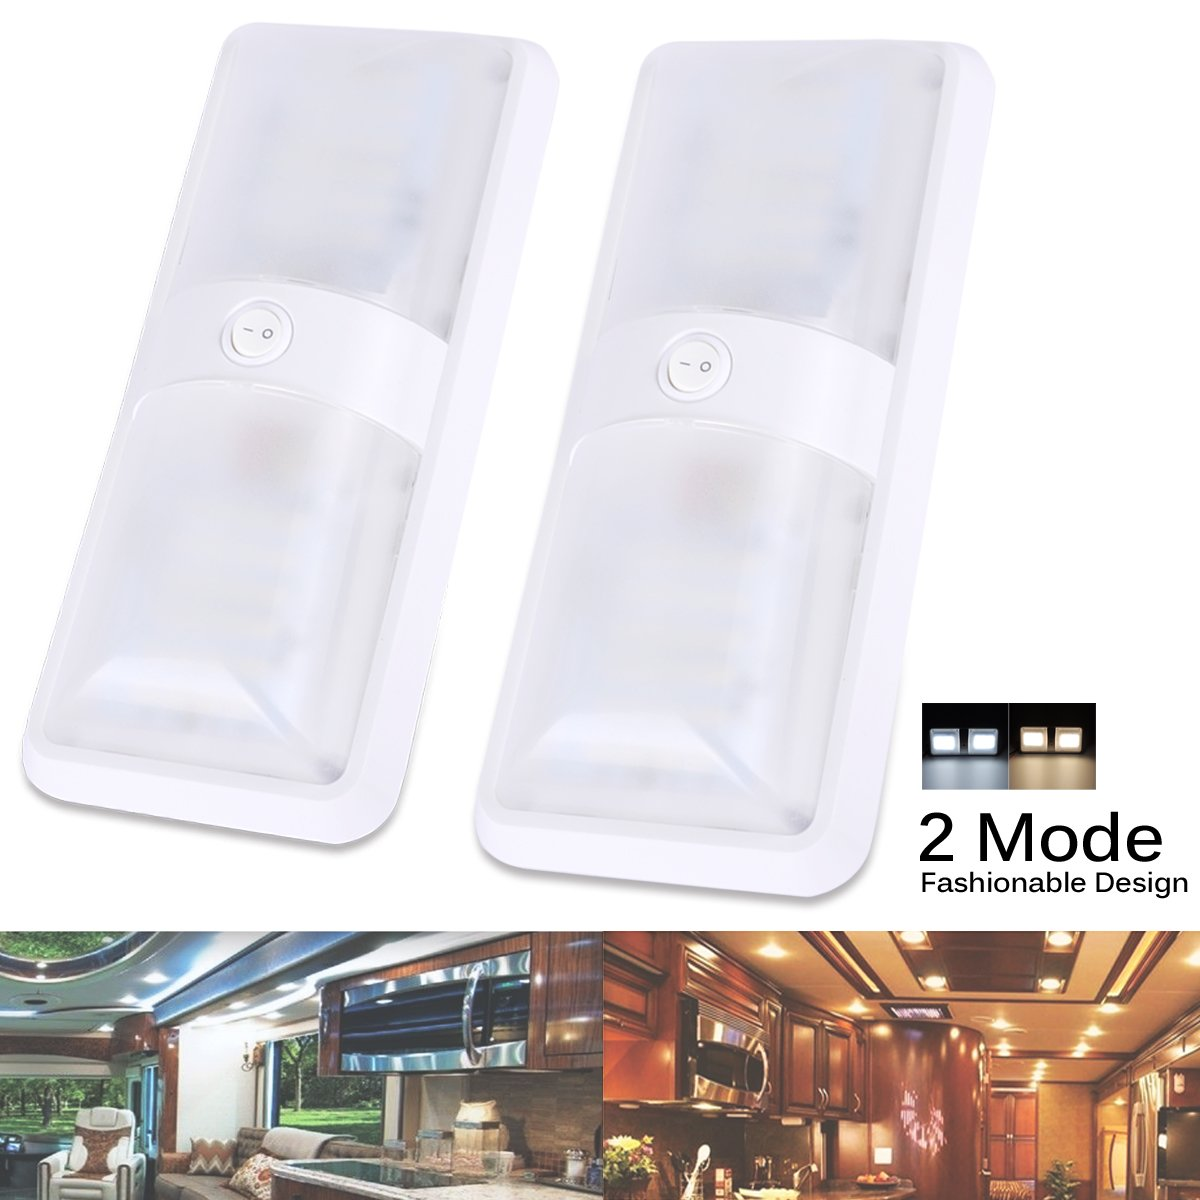 AutoEC LED Dome Light, 2 Color Mode 12V LED RV Ceiling Dome Light Fixture, Interior Replacement Light for RV, Trailer, Camper, Motorhome, Boat (2 Pack)